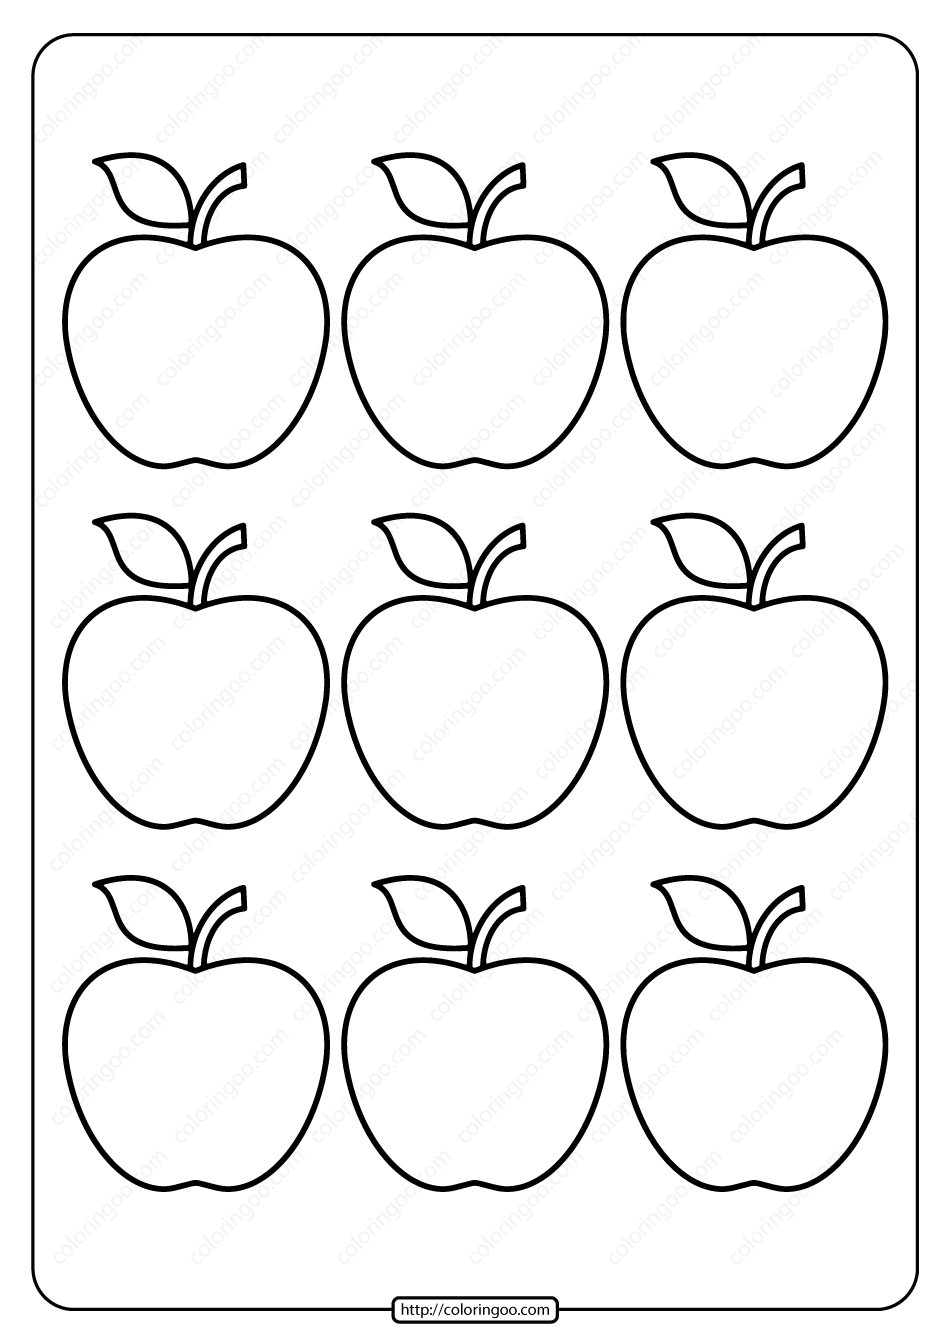 coloring outlines for kids sheep outline coloring page coloring home for coloring outlines kids